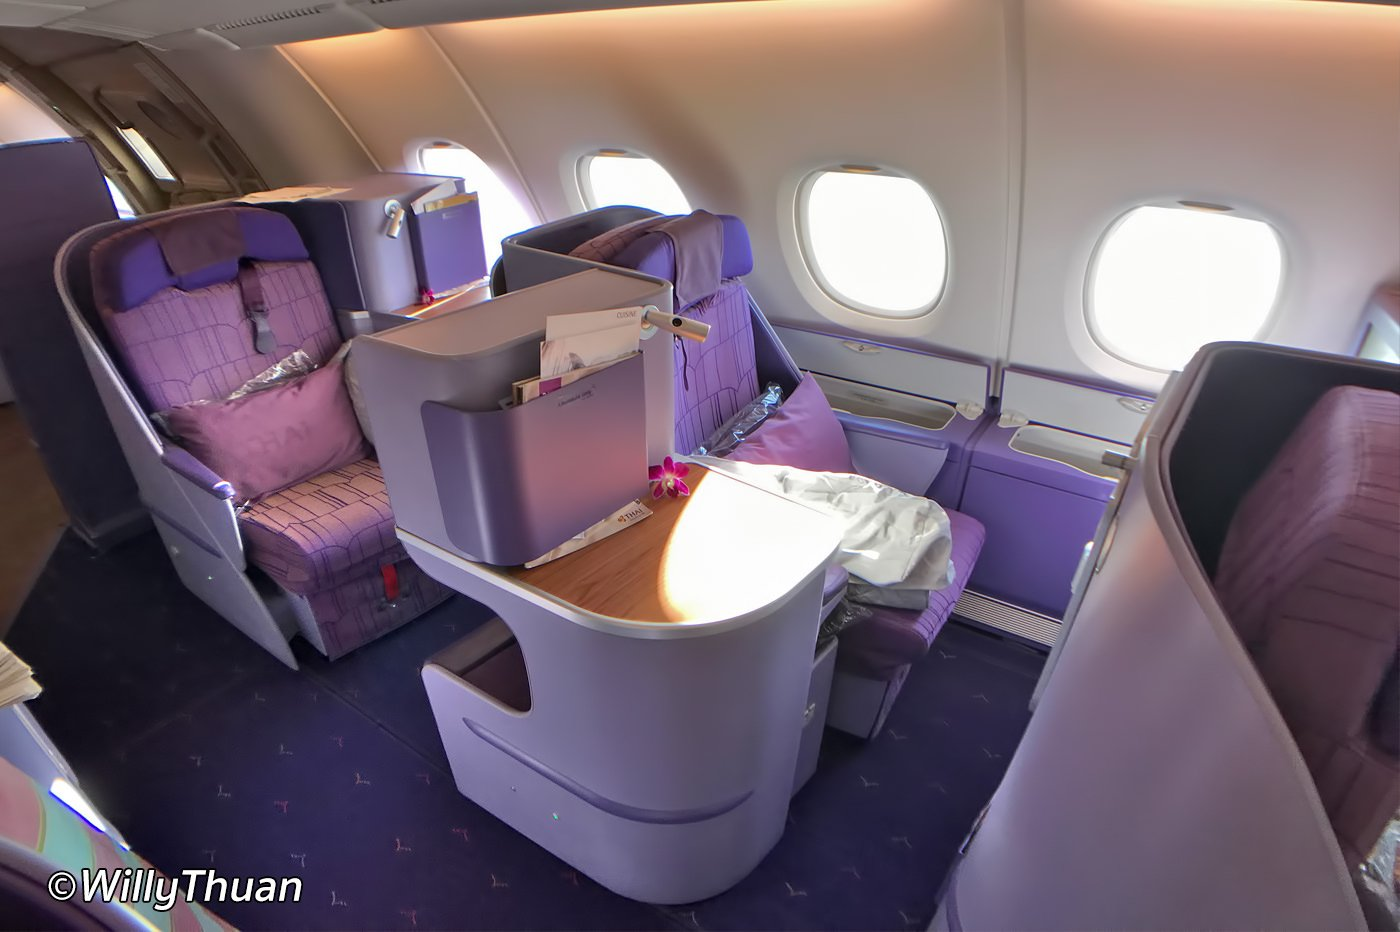 Flying Business Class on Thai Airways – What it's like